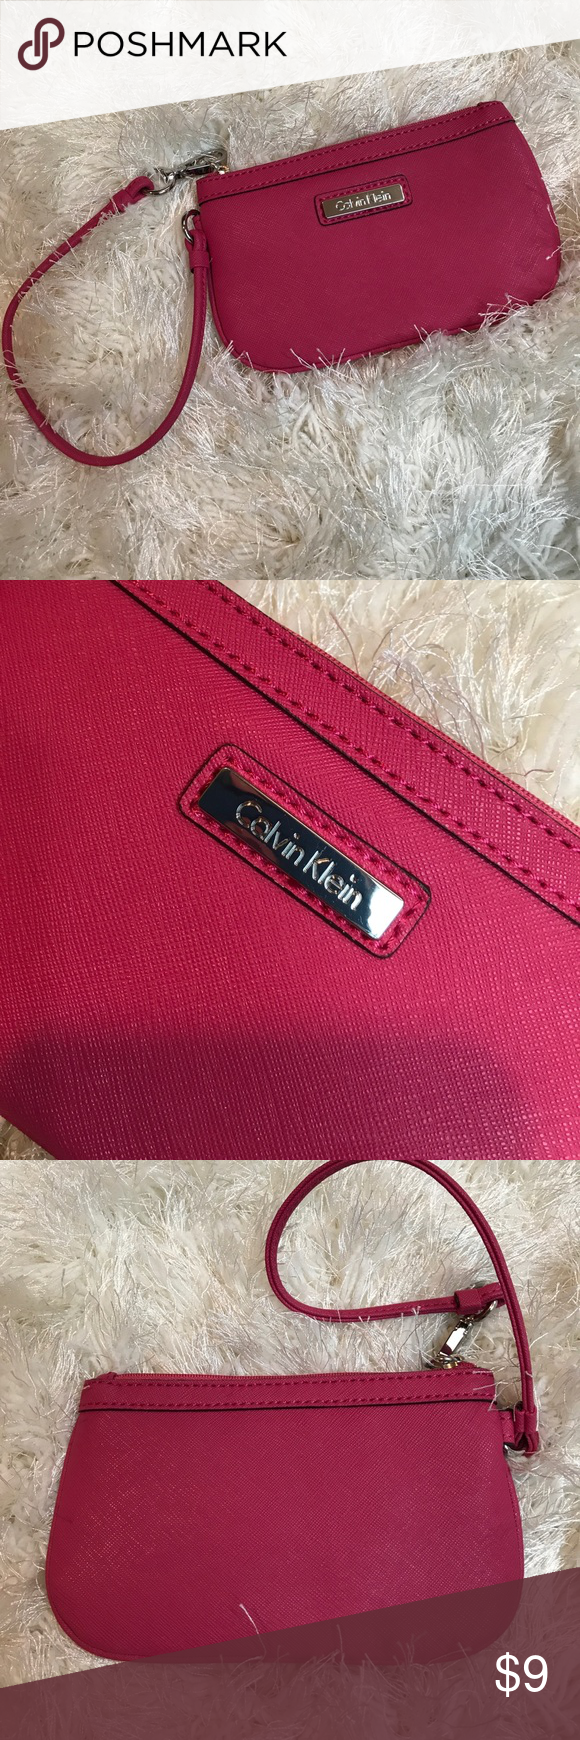 Calvin Klein pink wristlet wallet New without tags- pink with chrome accents. Measures 6.8 x 4. Very clean & flaw free. Bundling is fun; check out my other items! No price talk in comments. No trades or holds. NO SPAM. Calvin Klein Bags Clutches & Wristlets